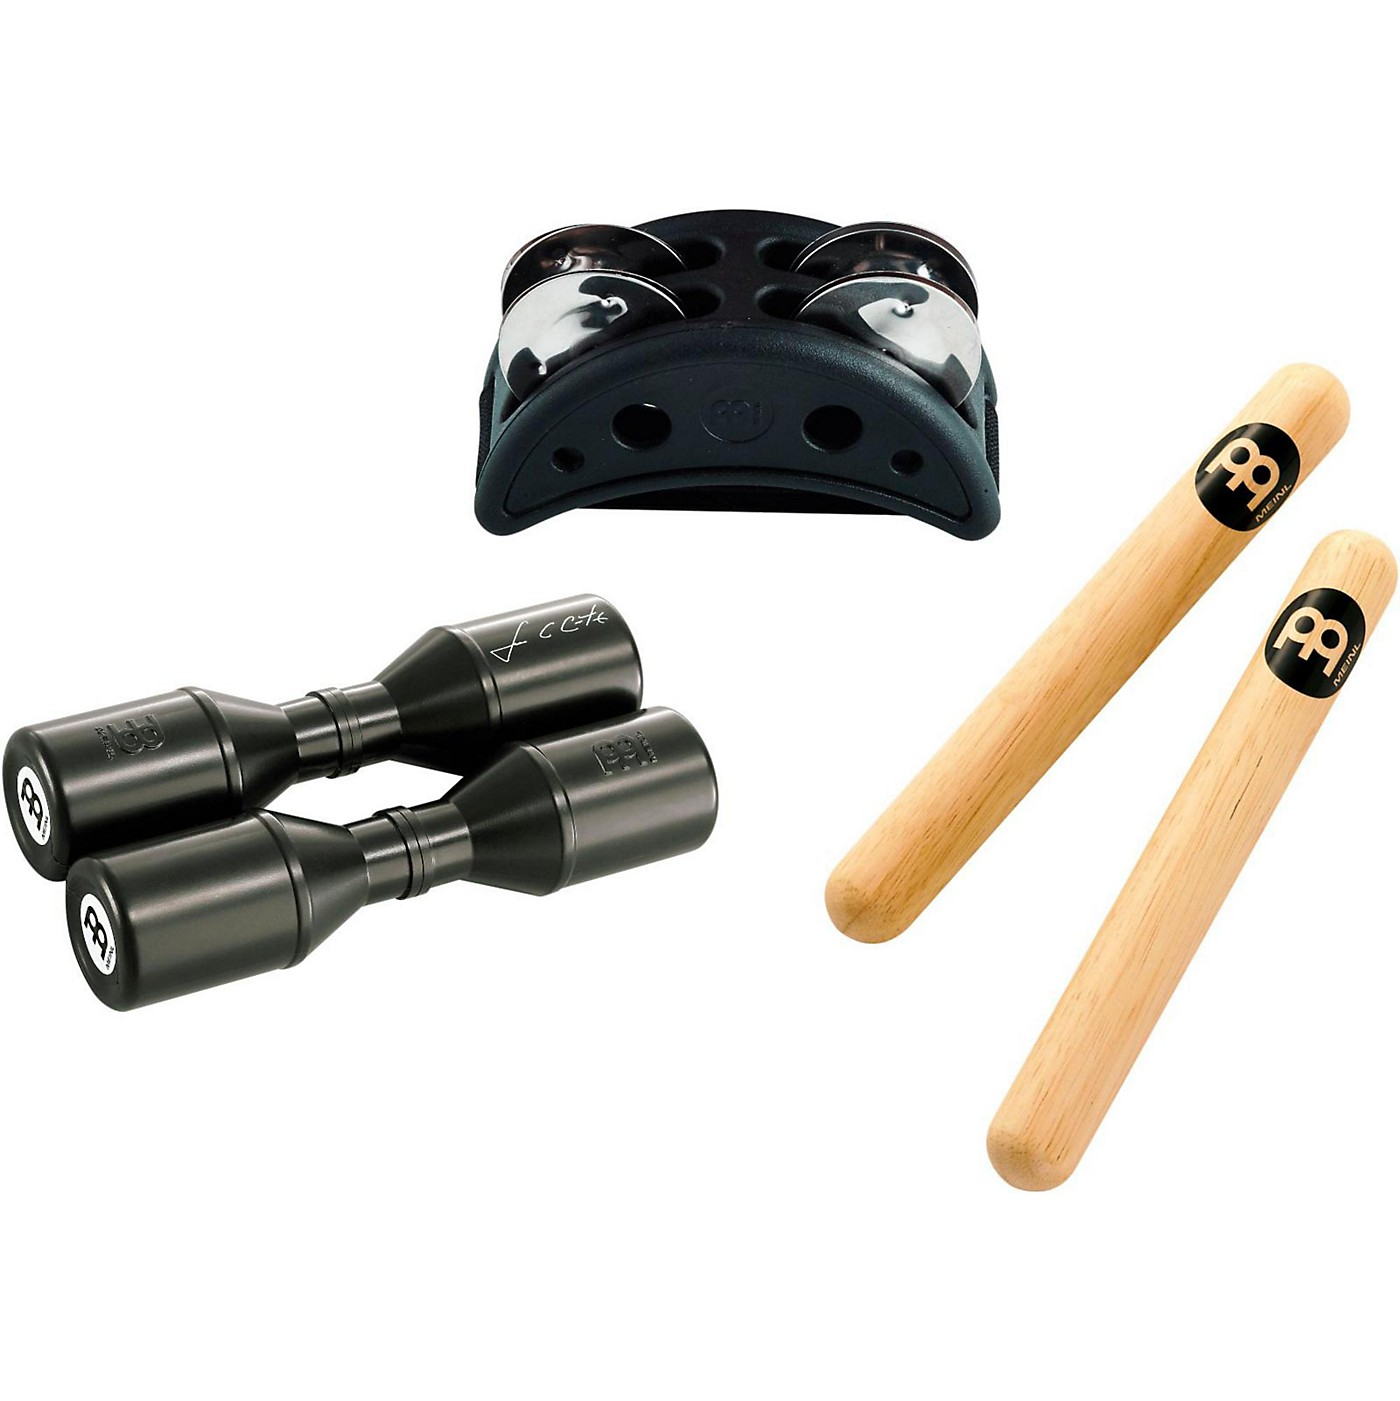 Meinl Percussion Pack w/ Compact Foot Jingle Tambourine, Classic Hardwood Claves and Artist Series Shaker thumbnail